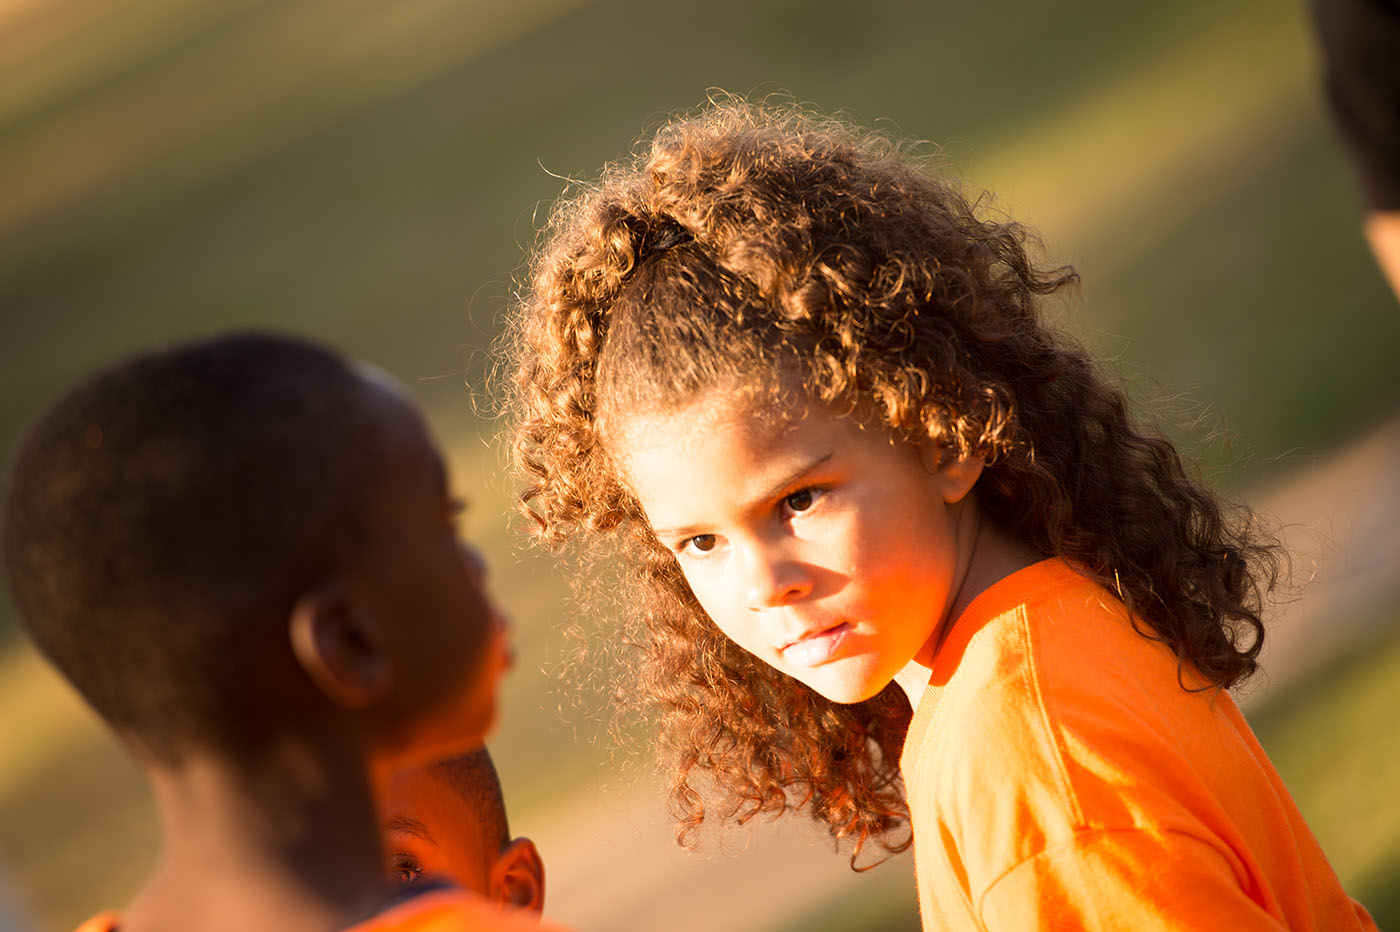 A young girl, with brown hair and eyes wearing an orange tshirt, is looking at a boy.